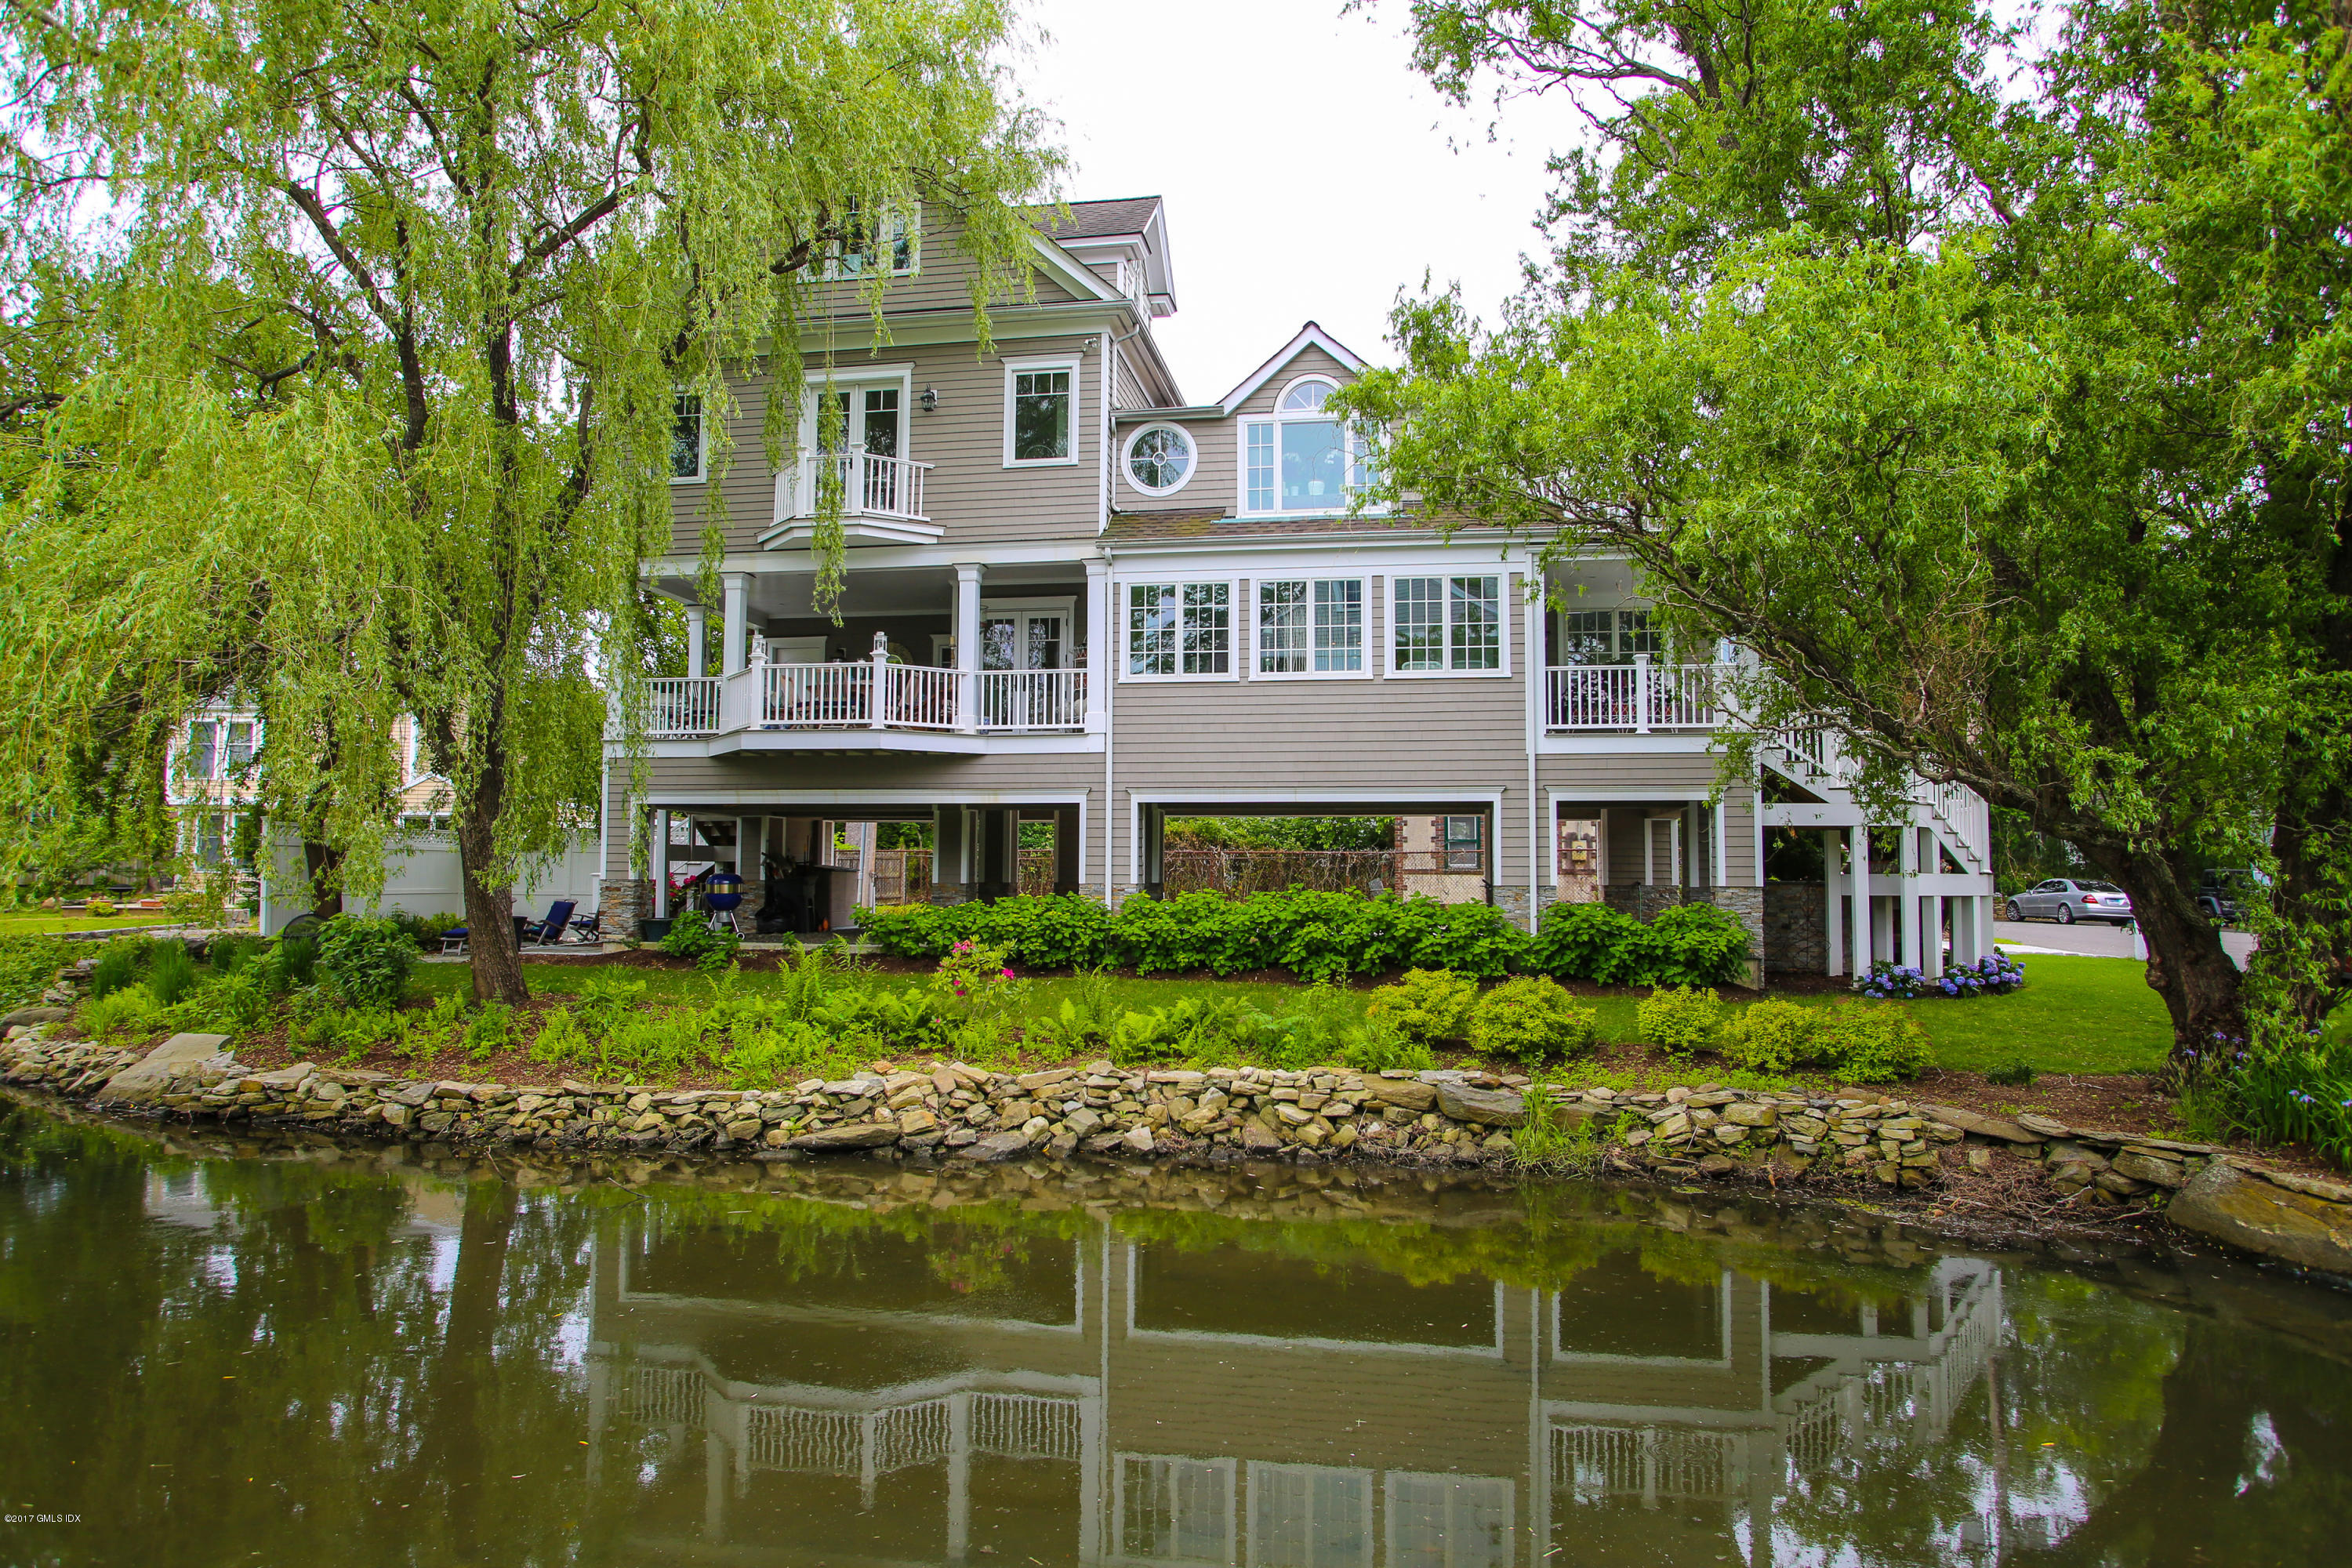 30 Heusted Drive,Old Greenwich,Connecticut 06870,4 Bedrooms Bedrooms,3 BathroomsBathrooms,Single family,Heusted,106776